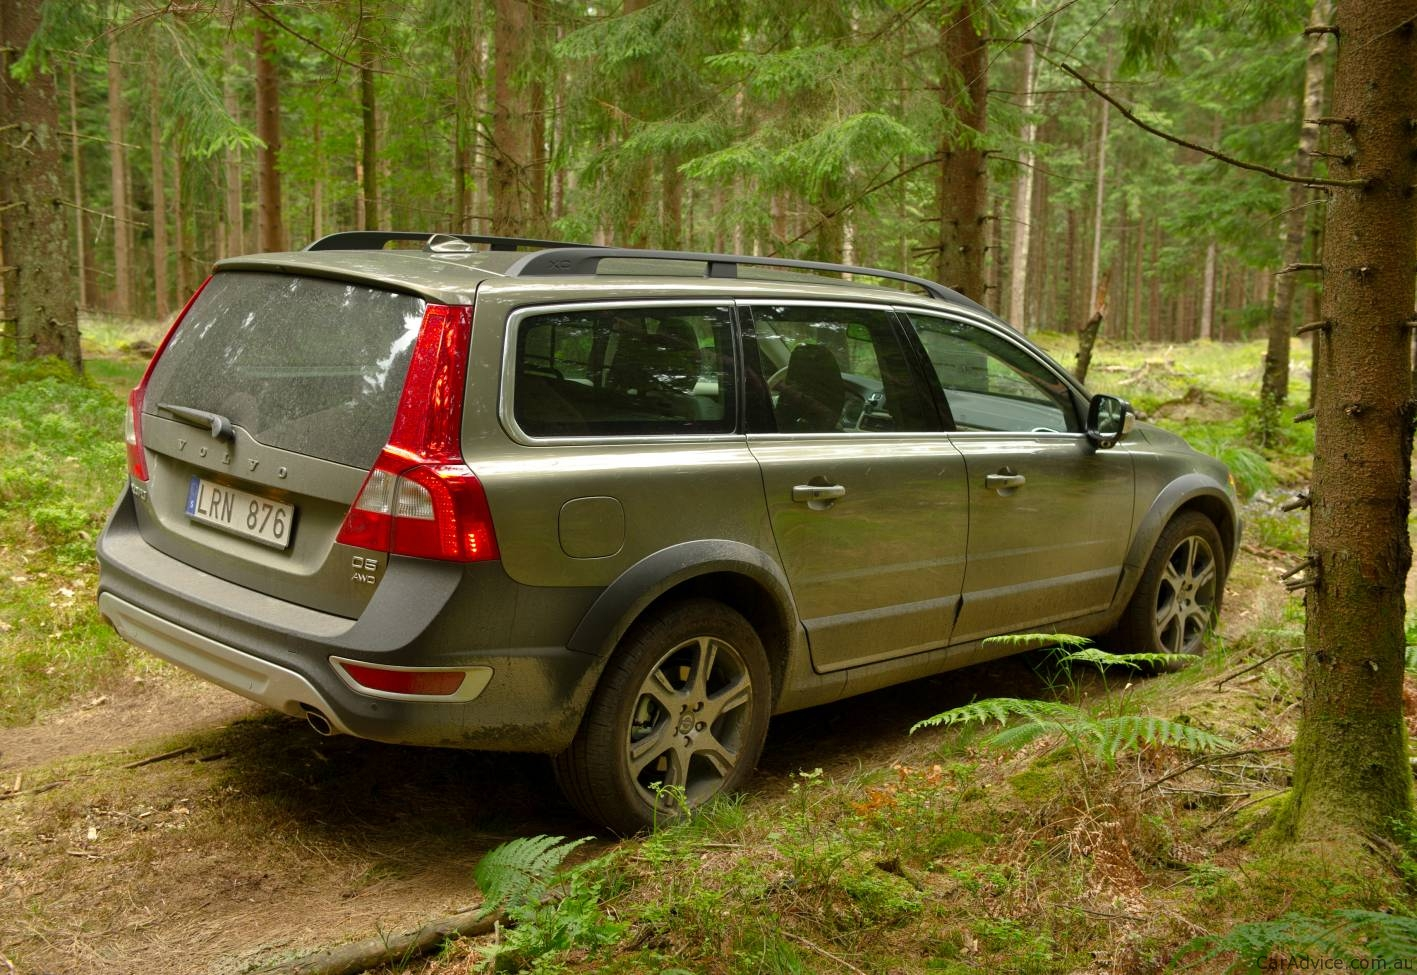 2012 Volvo Xc70 Update On Sale In Australia Photos